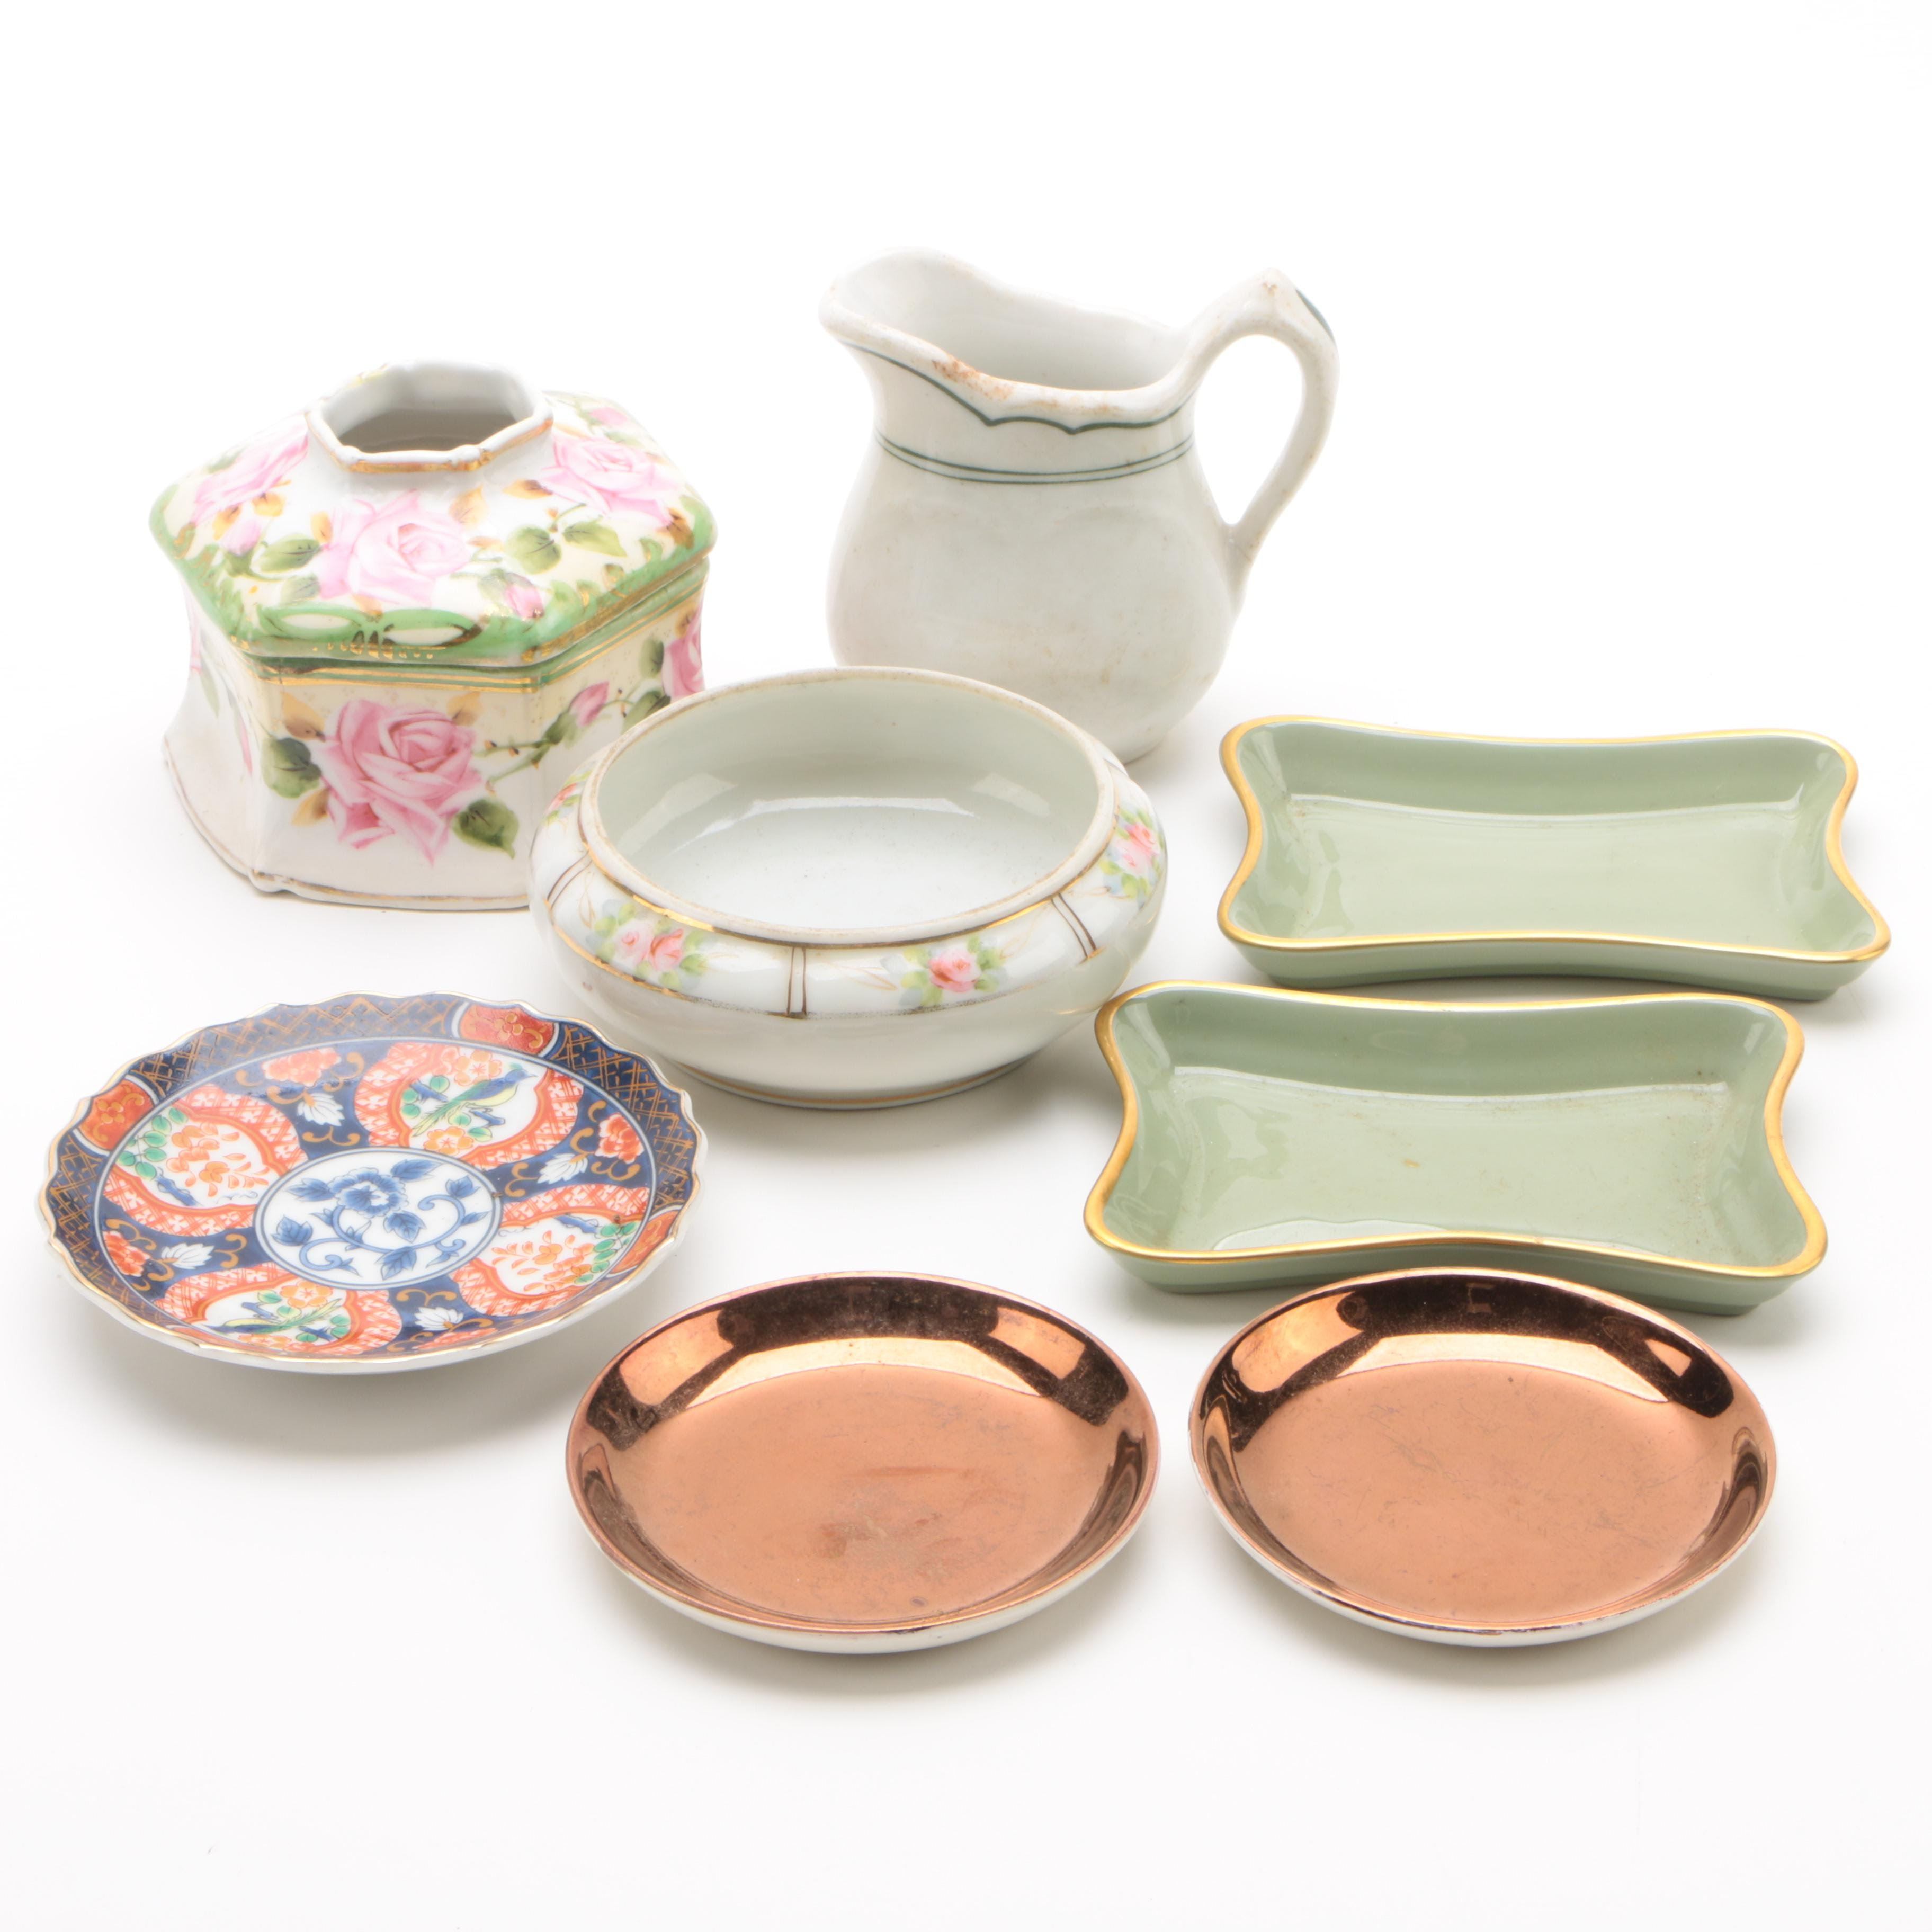 Porcelain and Ceramic Tableware and Decor Featuring Nippon